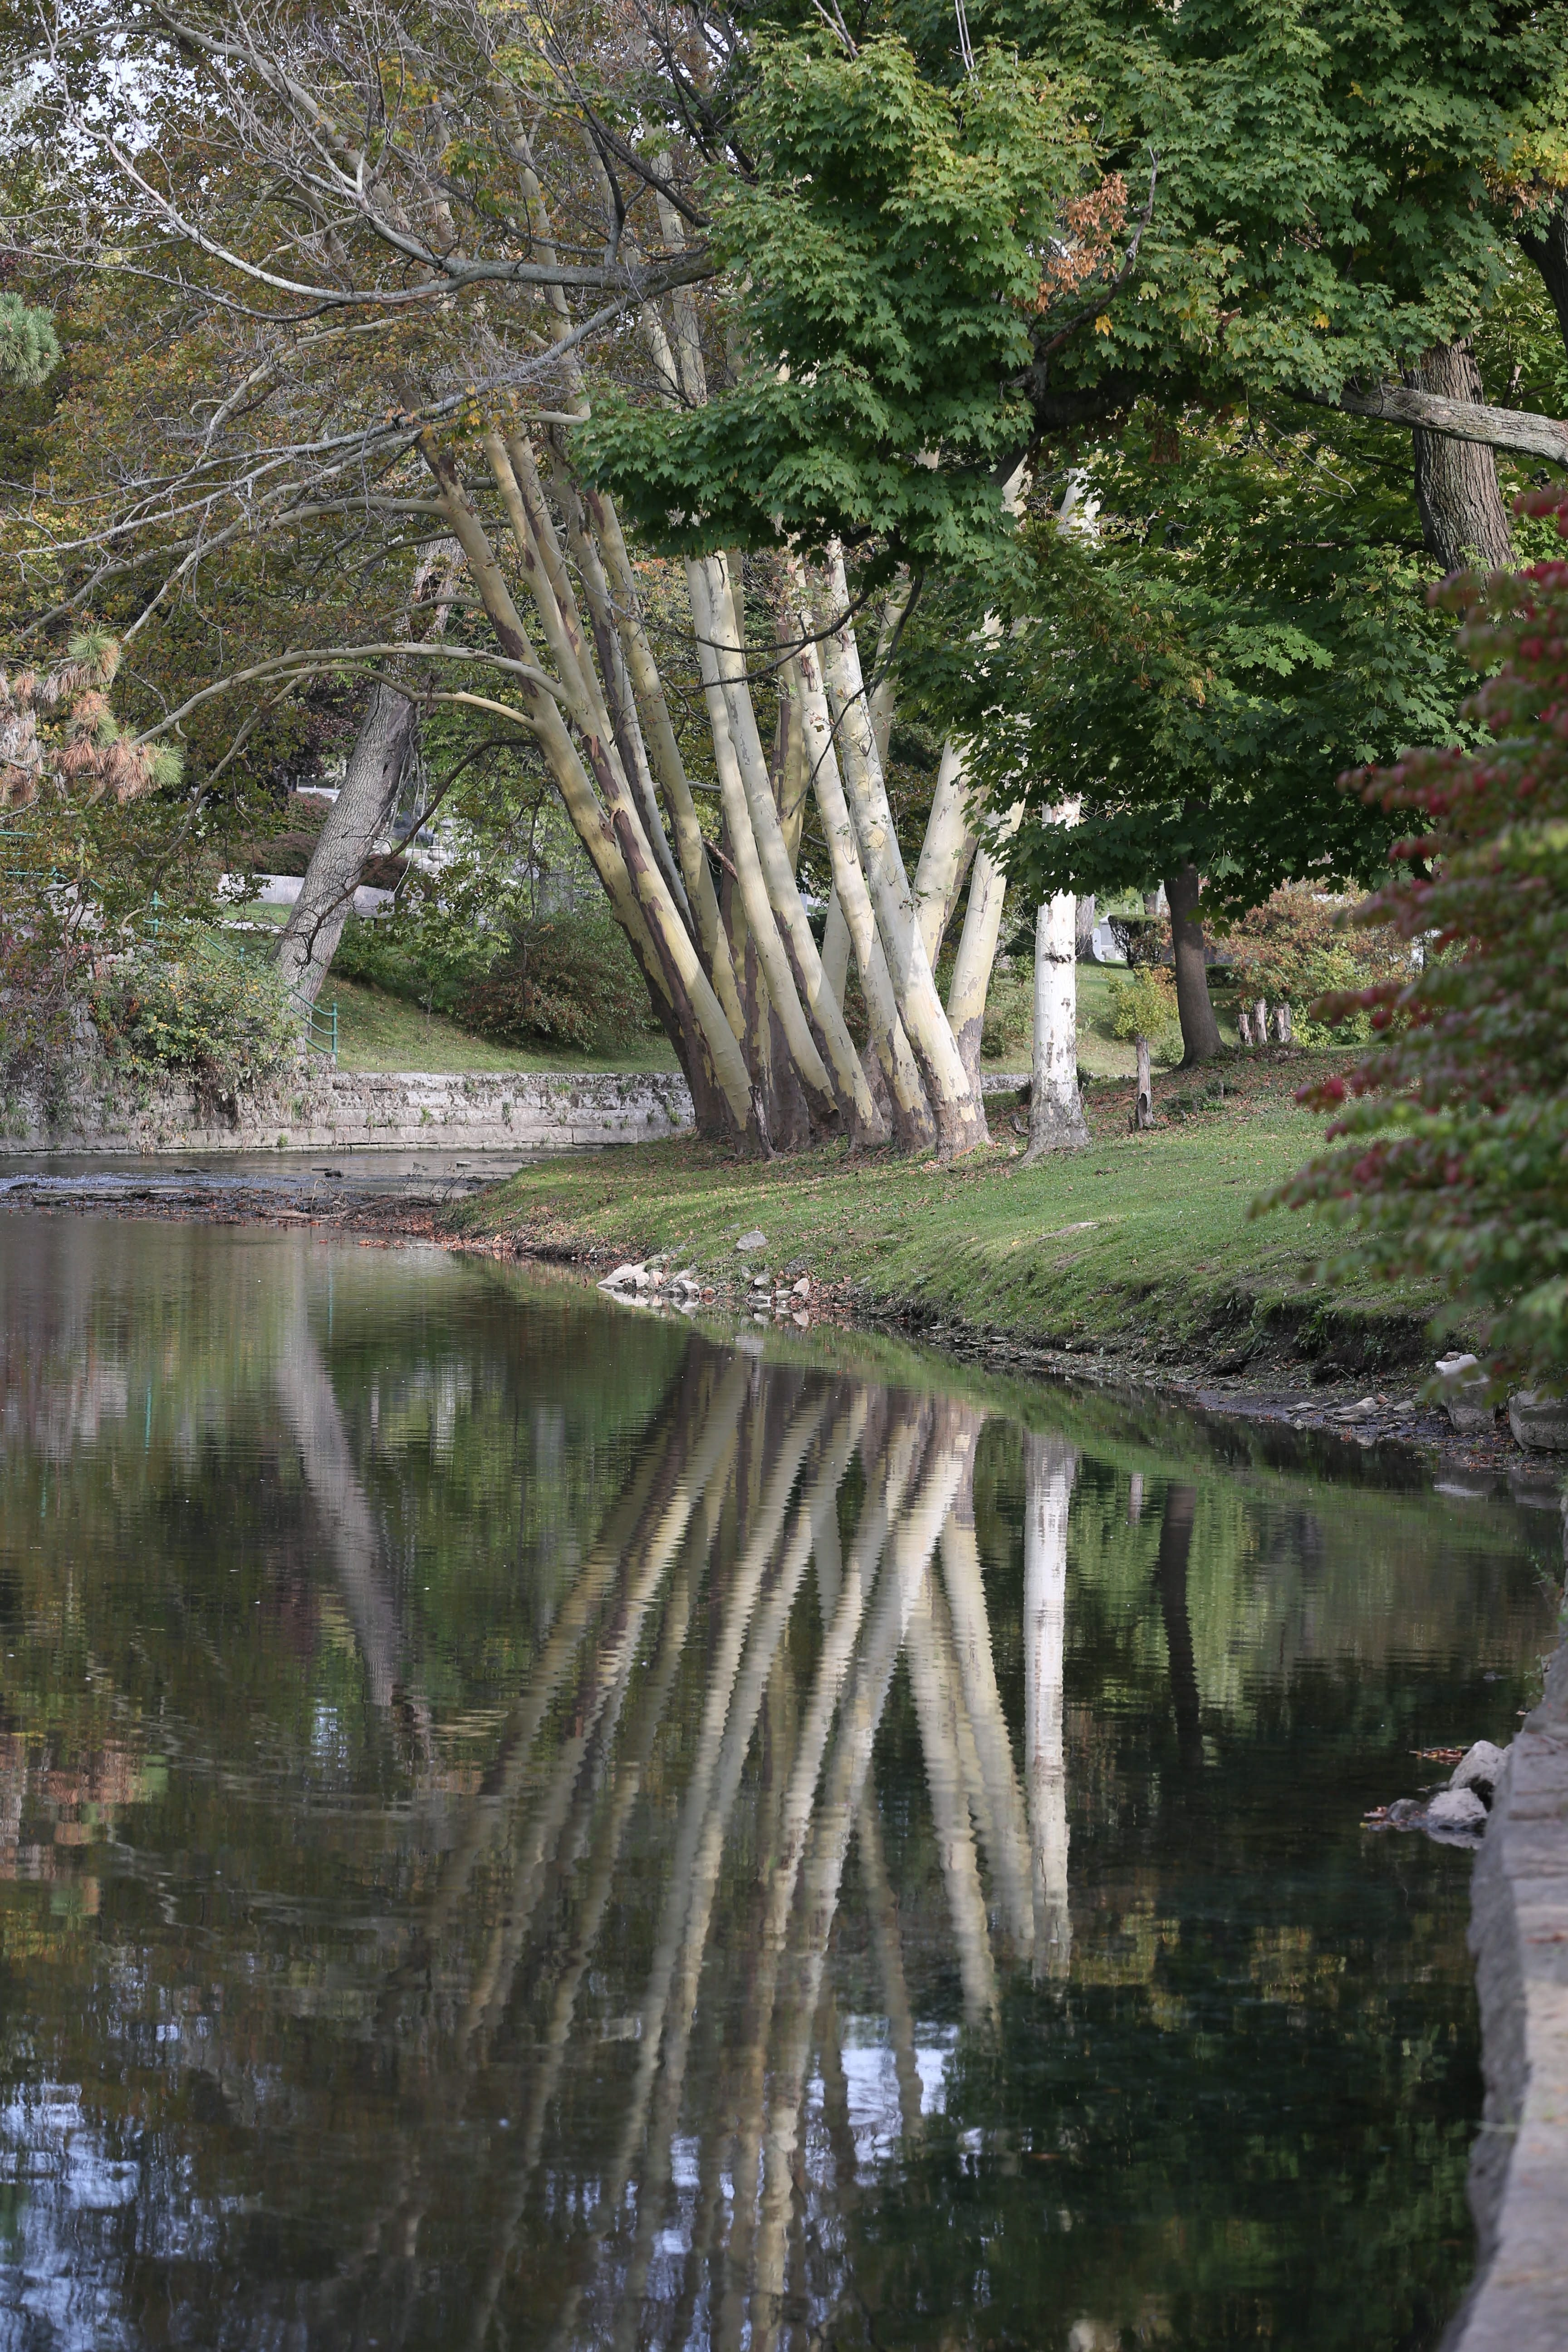 Forest Lawn Cemetery in its beautiful parklike setting is filled with a wealth of history and intriguing headstones and monuments. Reflections on Scajaquada Creek.